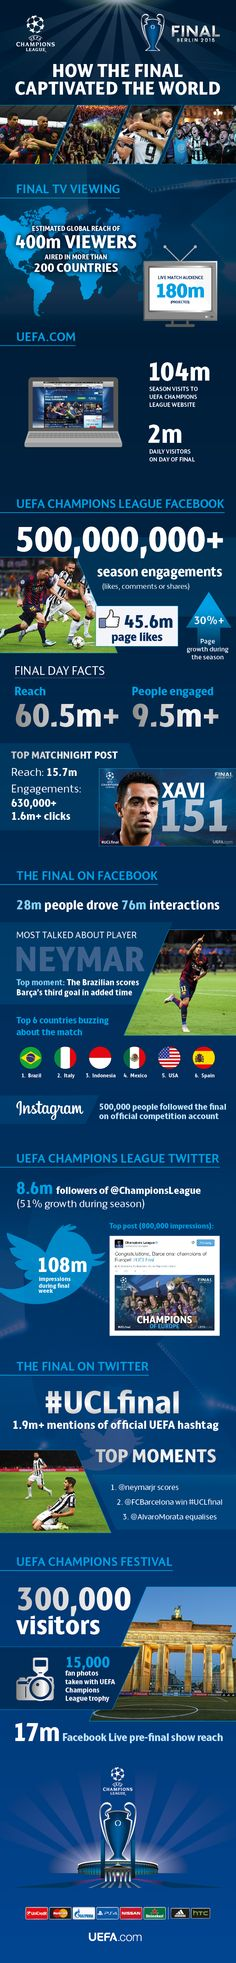 The UEFA Champions League final captivated hundreds of millions of supporters across the globe as fans watched the action and shared their views on social media. #SMsports #digisport #UCLfinal